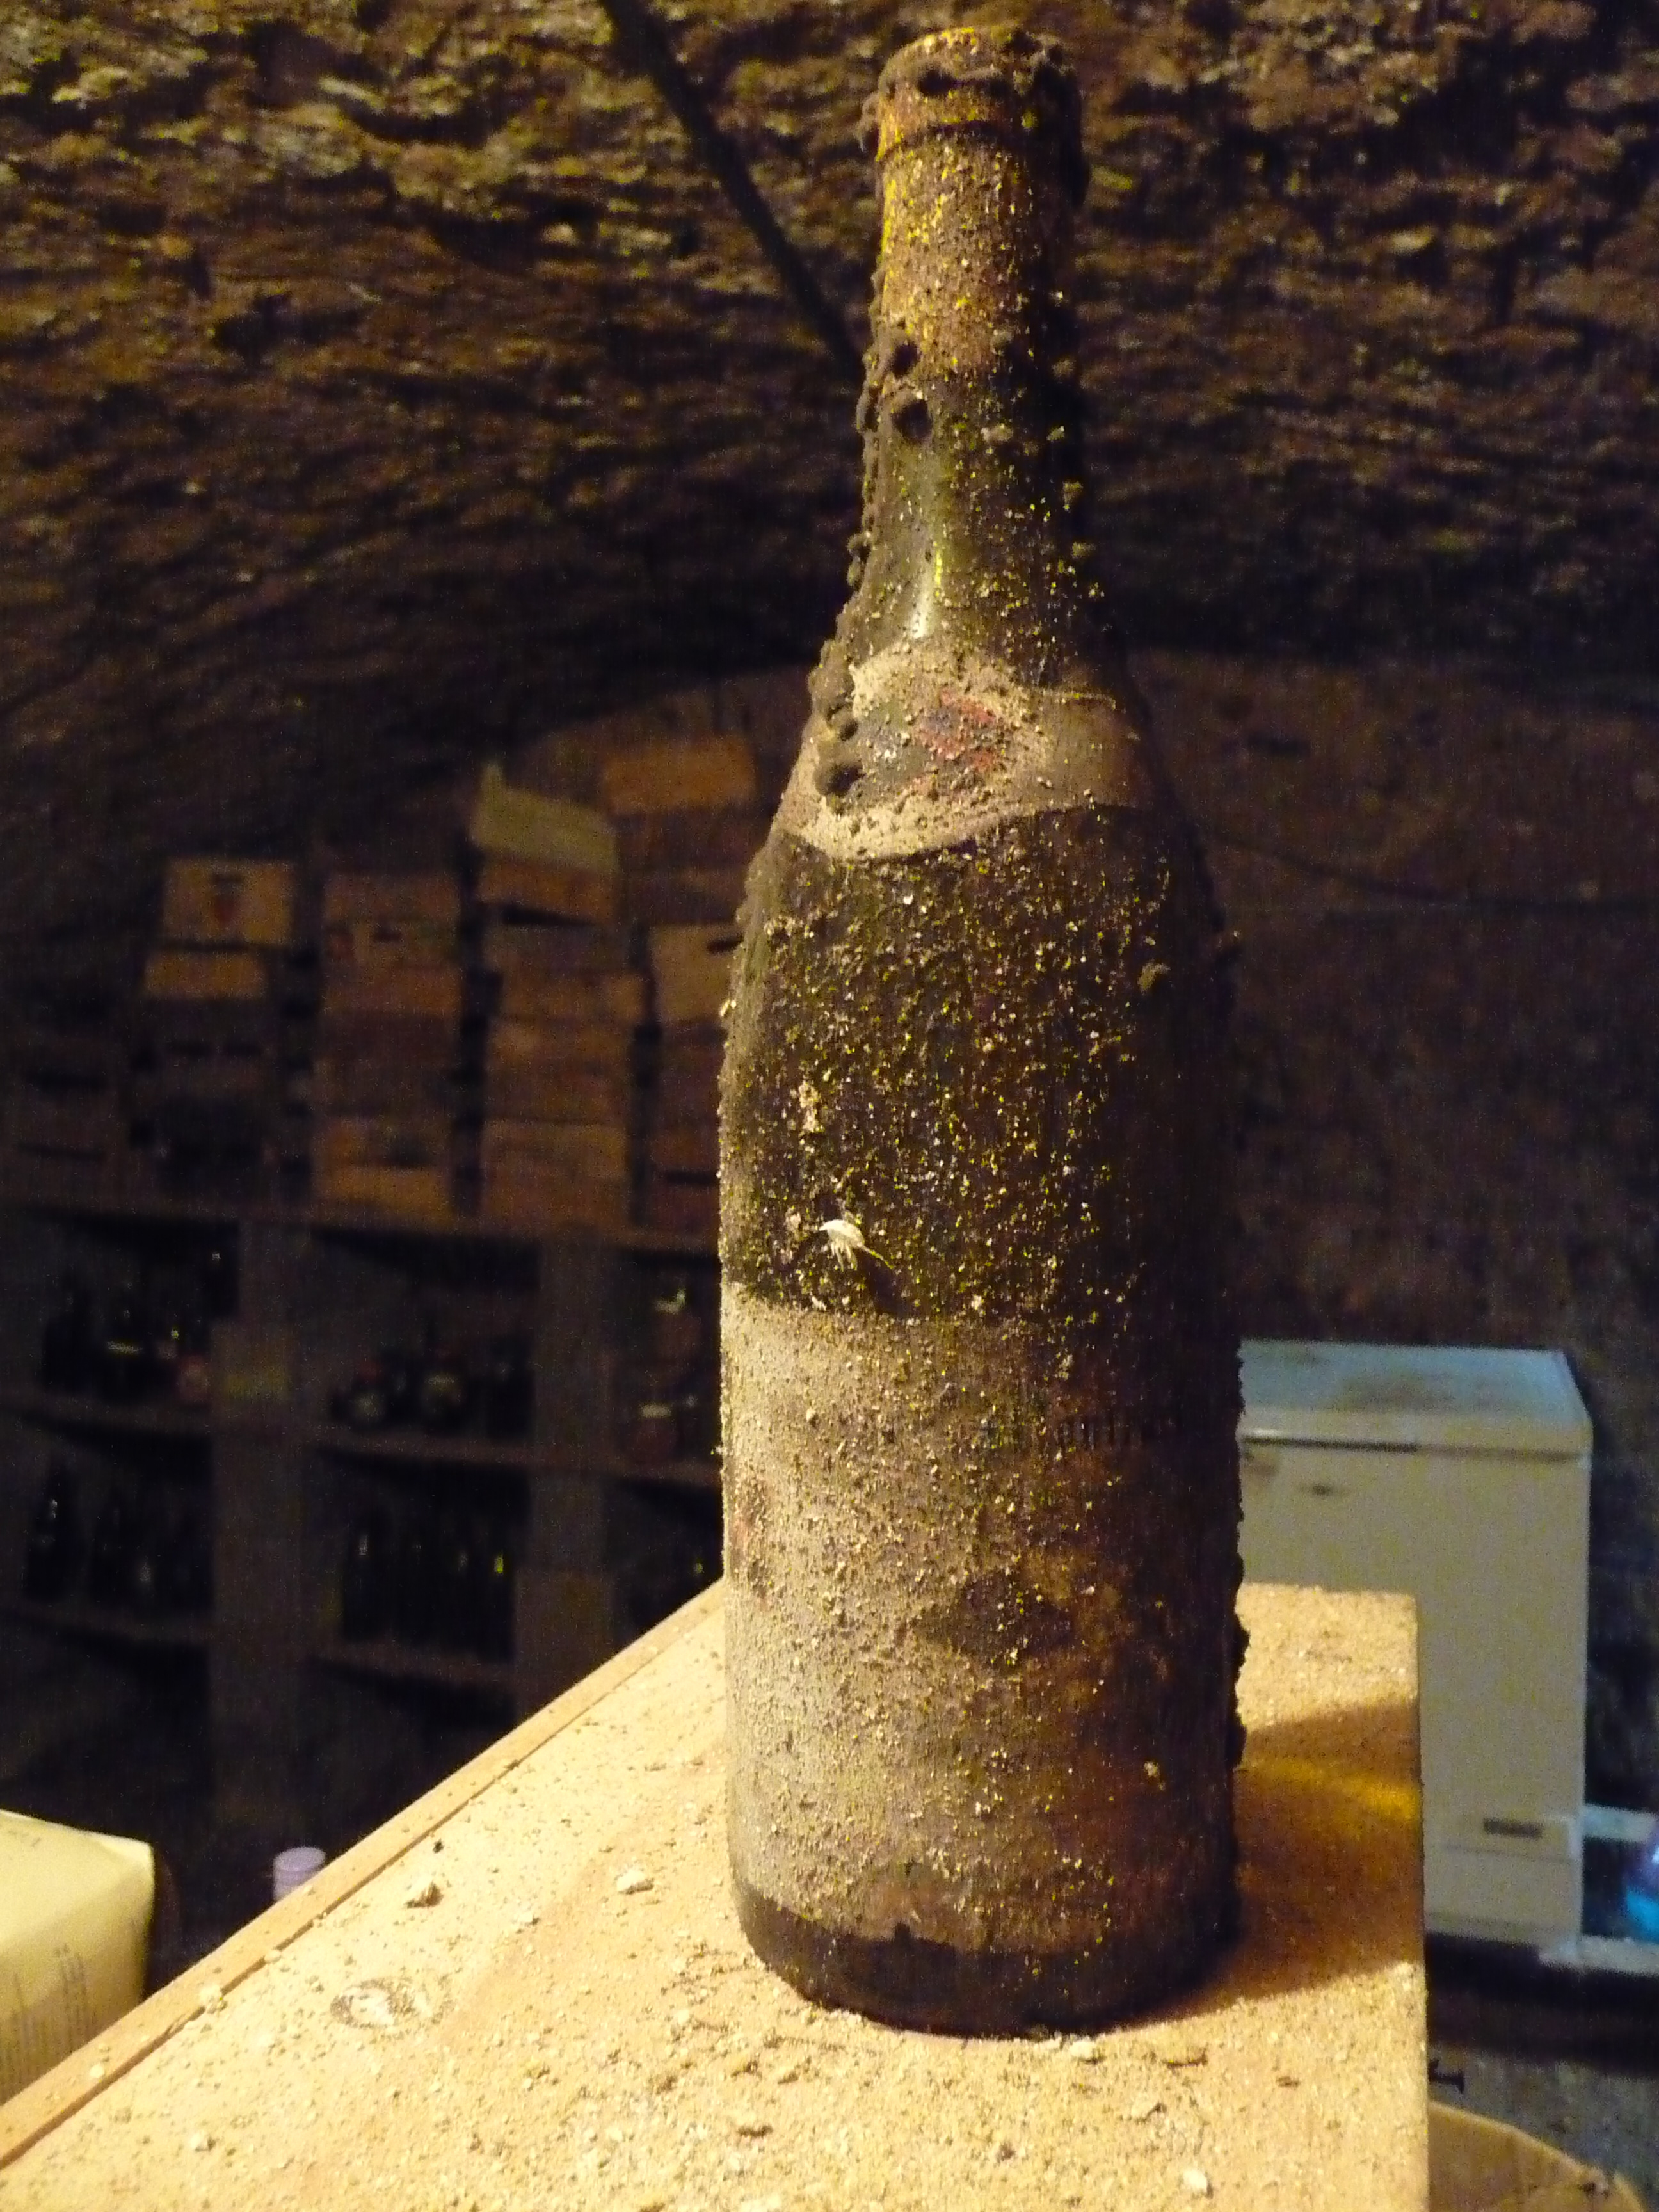 old wine bottle chain bridge cellars